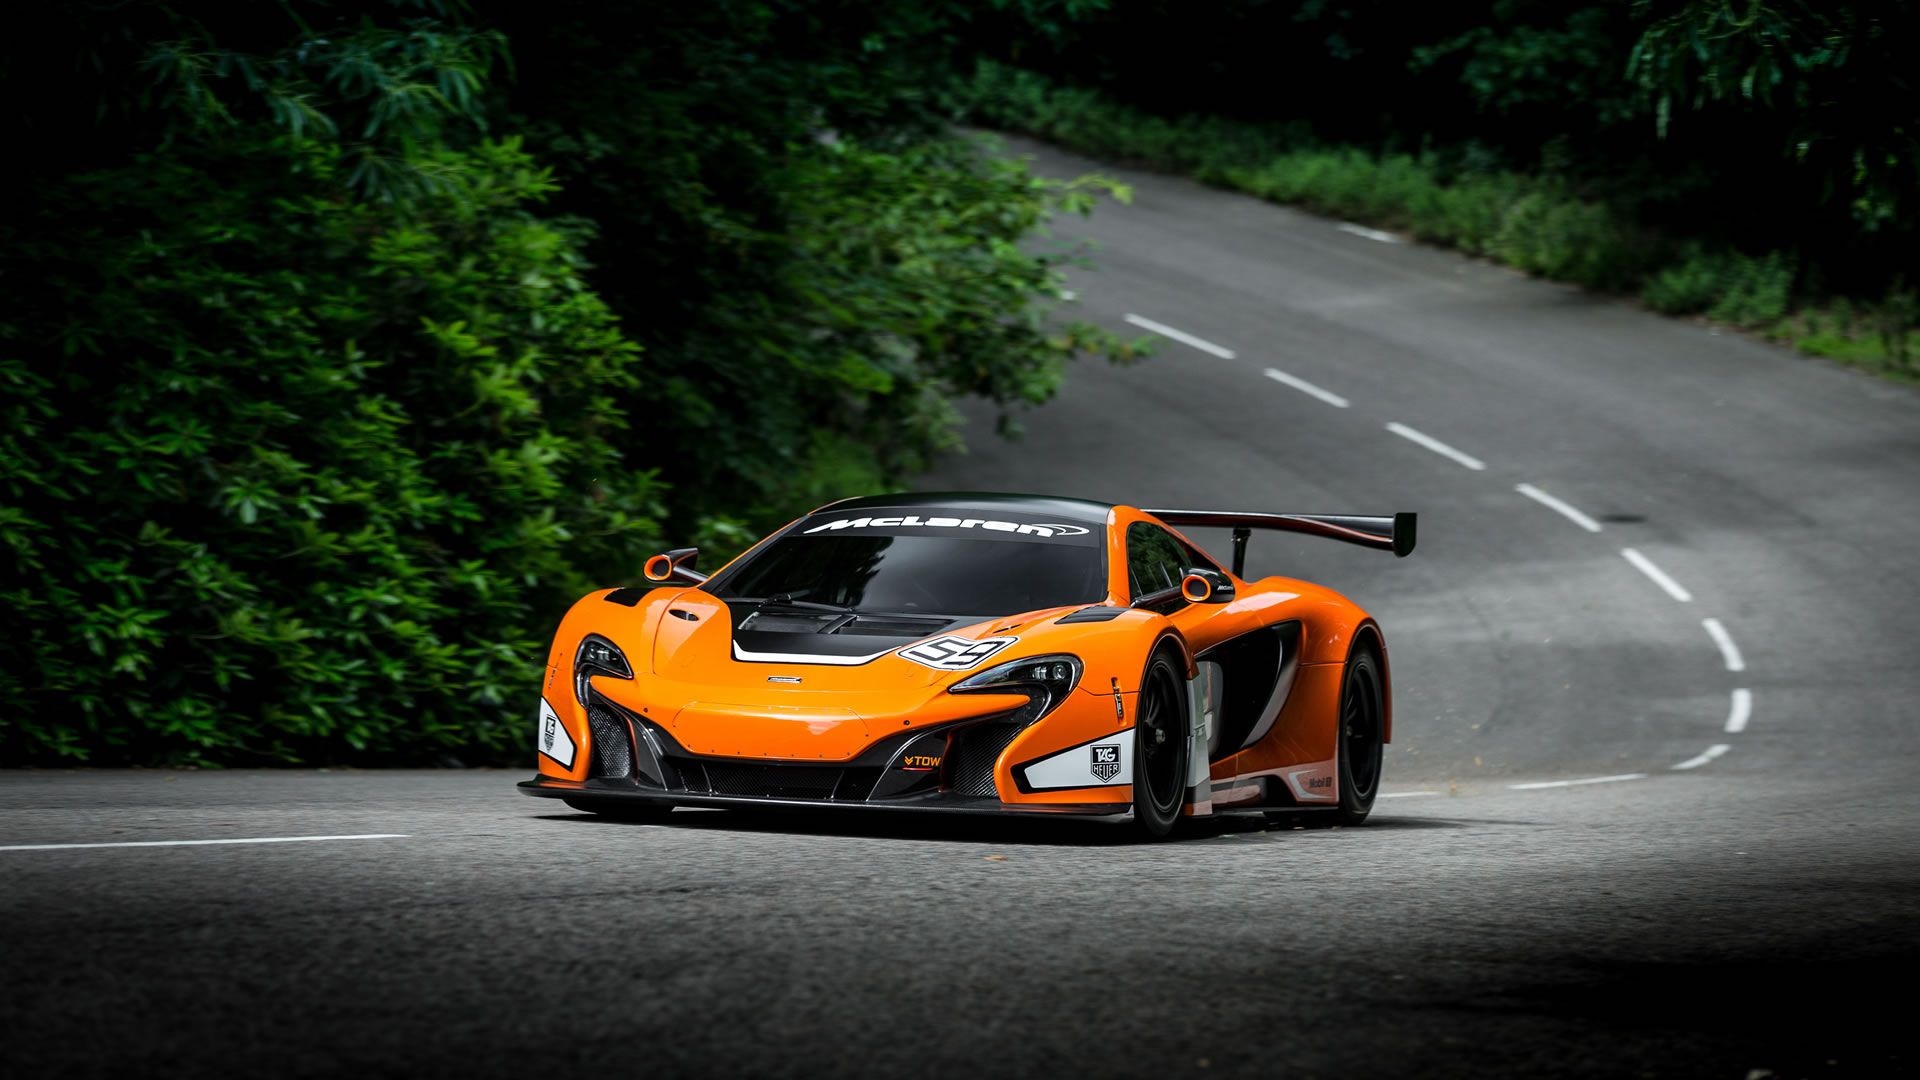 2014 McLaren 650S GT3 Race Car Wallpaper - 1920 x 1080